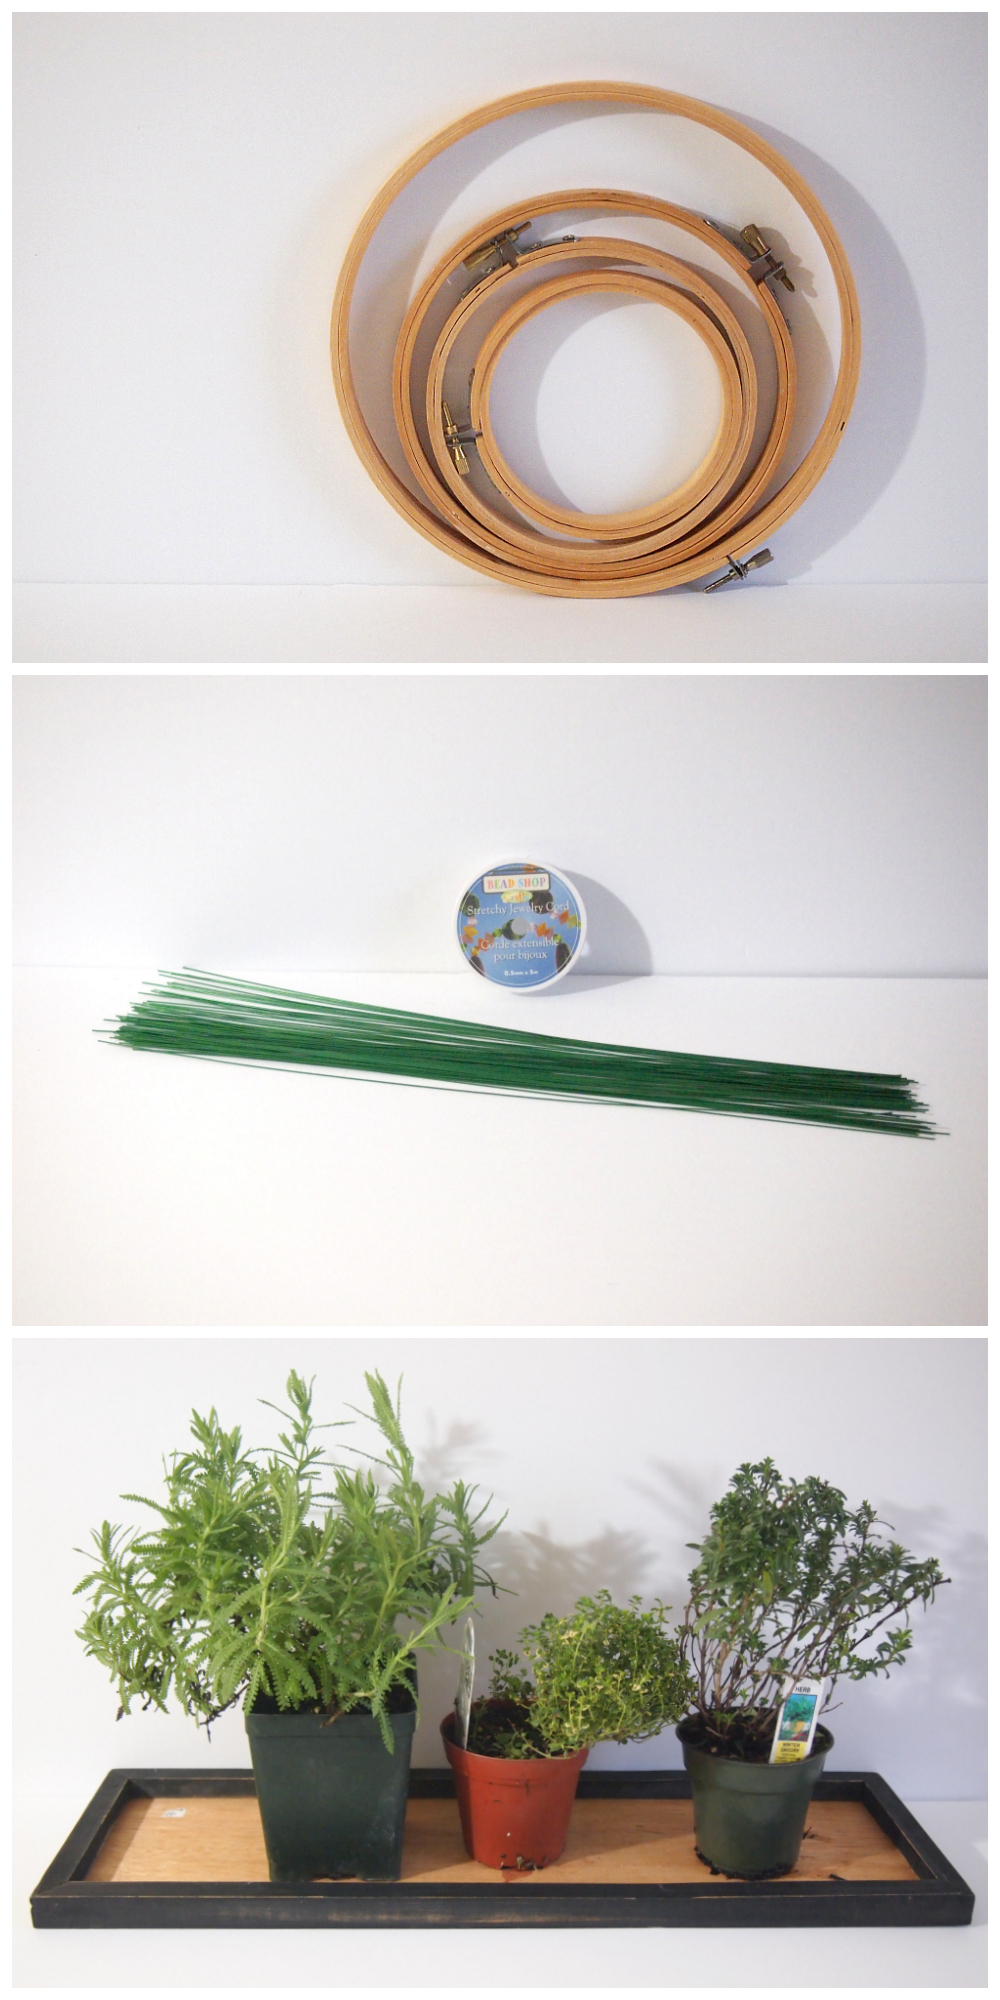 Materials for making a herb wreath